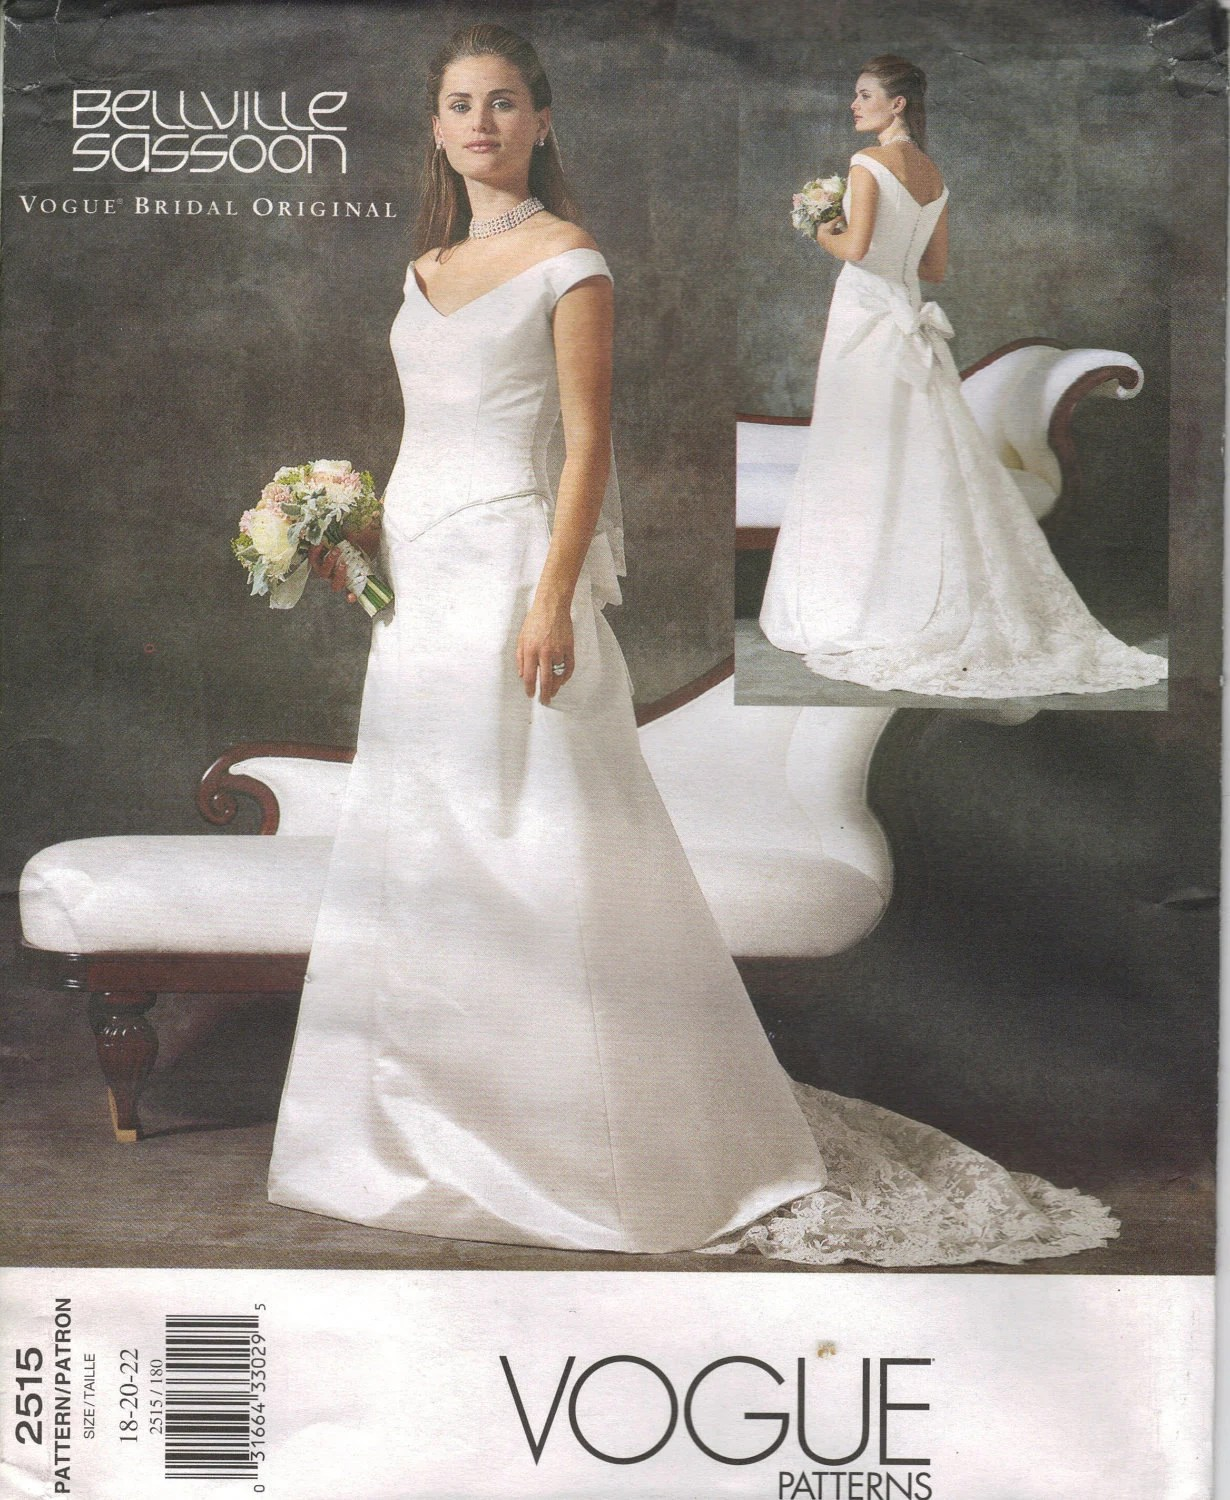 sewing patterns wedding dress sewing patterns 21 best images about Sewing Patterns on Pinterest Sewing patterns UX UI Designer and Originals